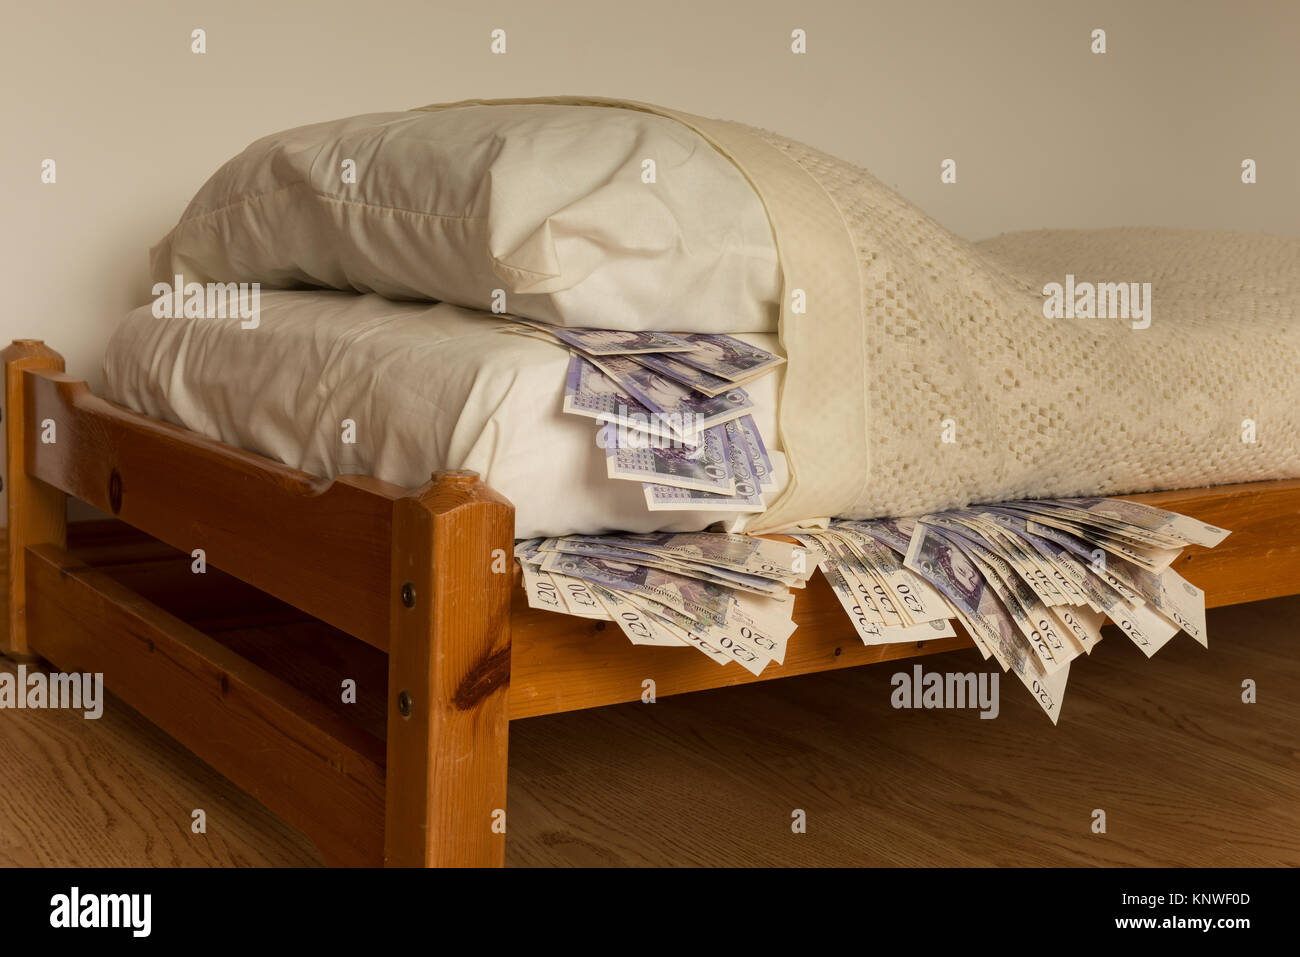 A Ready Supply Of Stashed Cash Money Banknotes Under The Bed Mattress Stock Photo Alamy